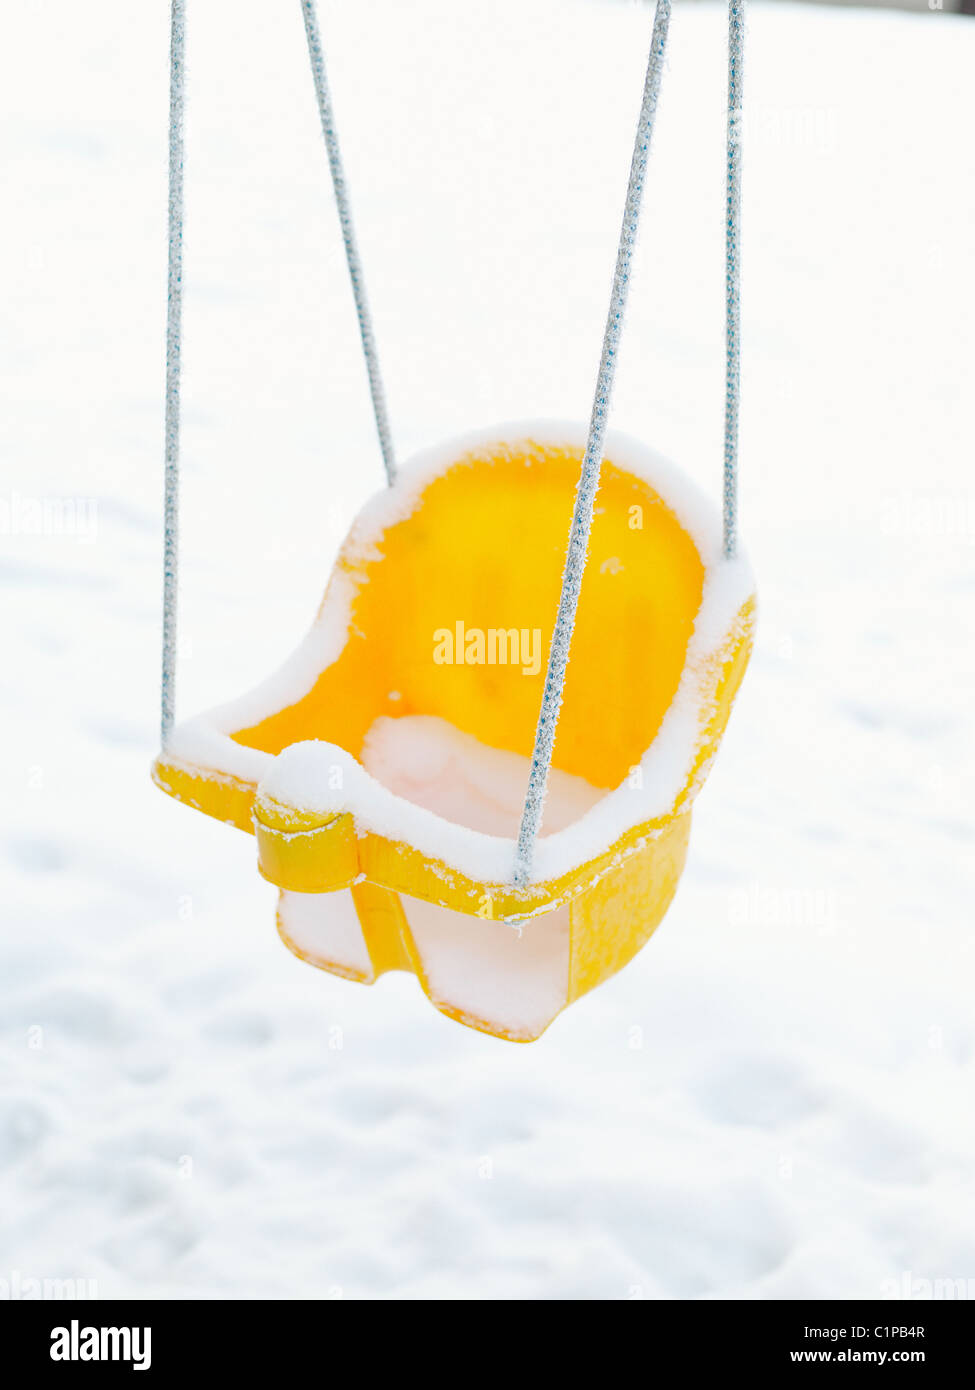 Plastic swing covered with snow - Stock Image